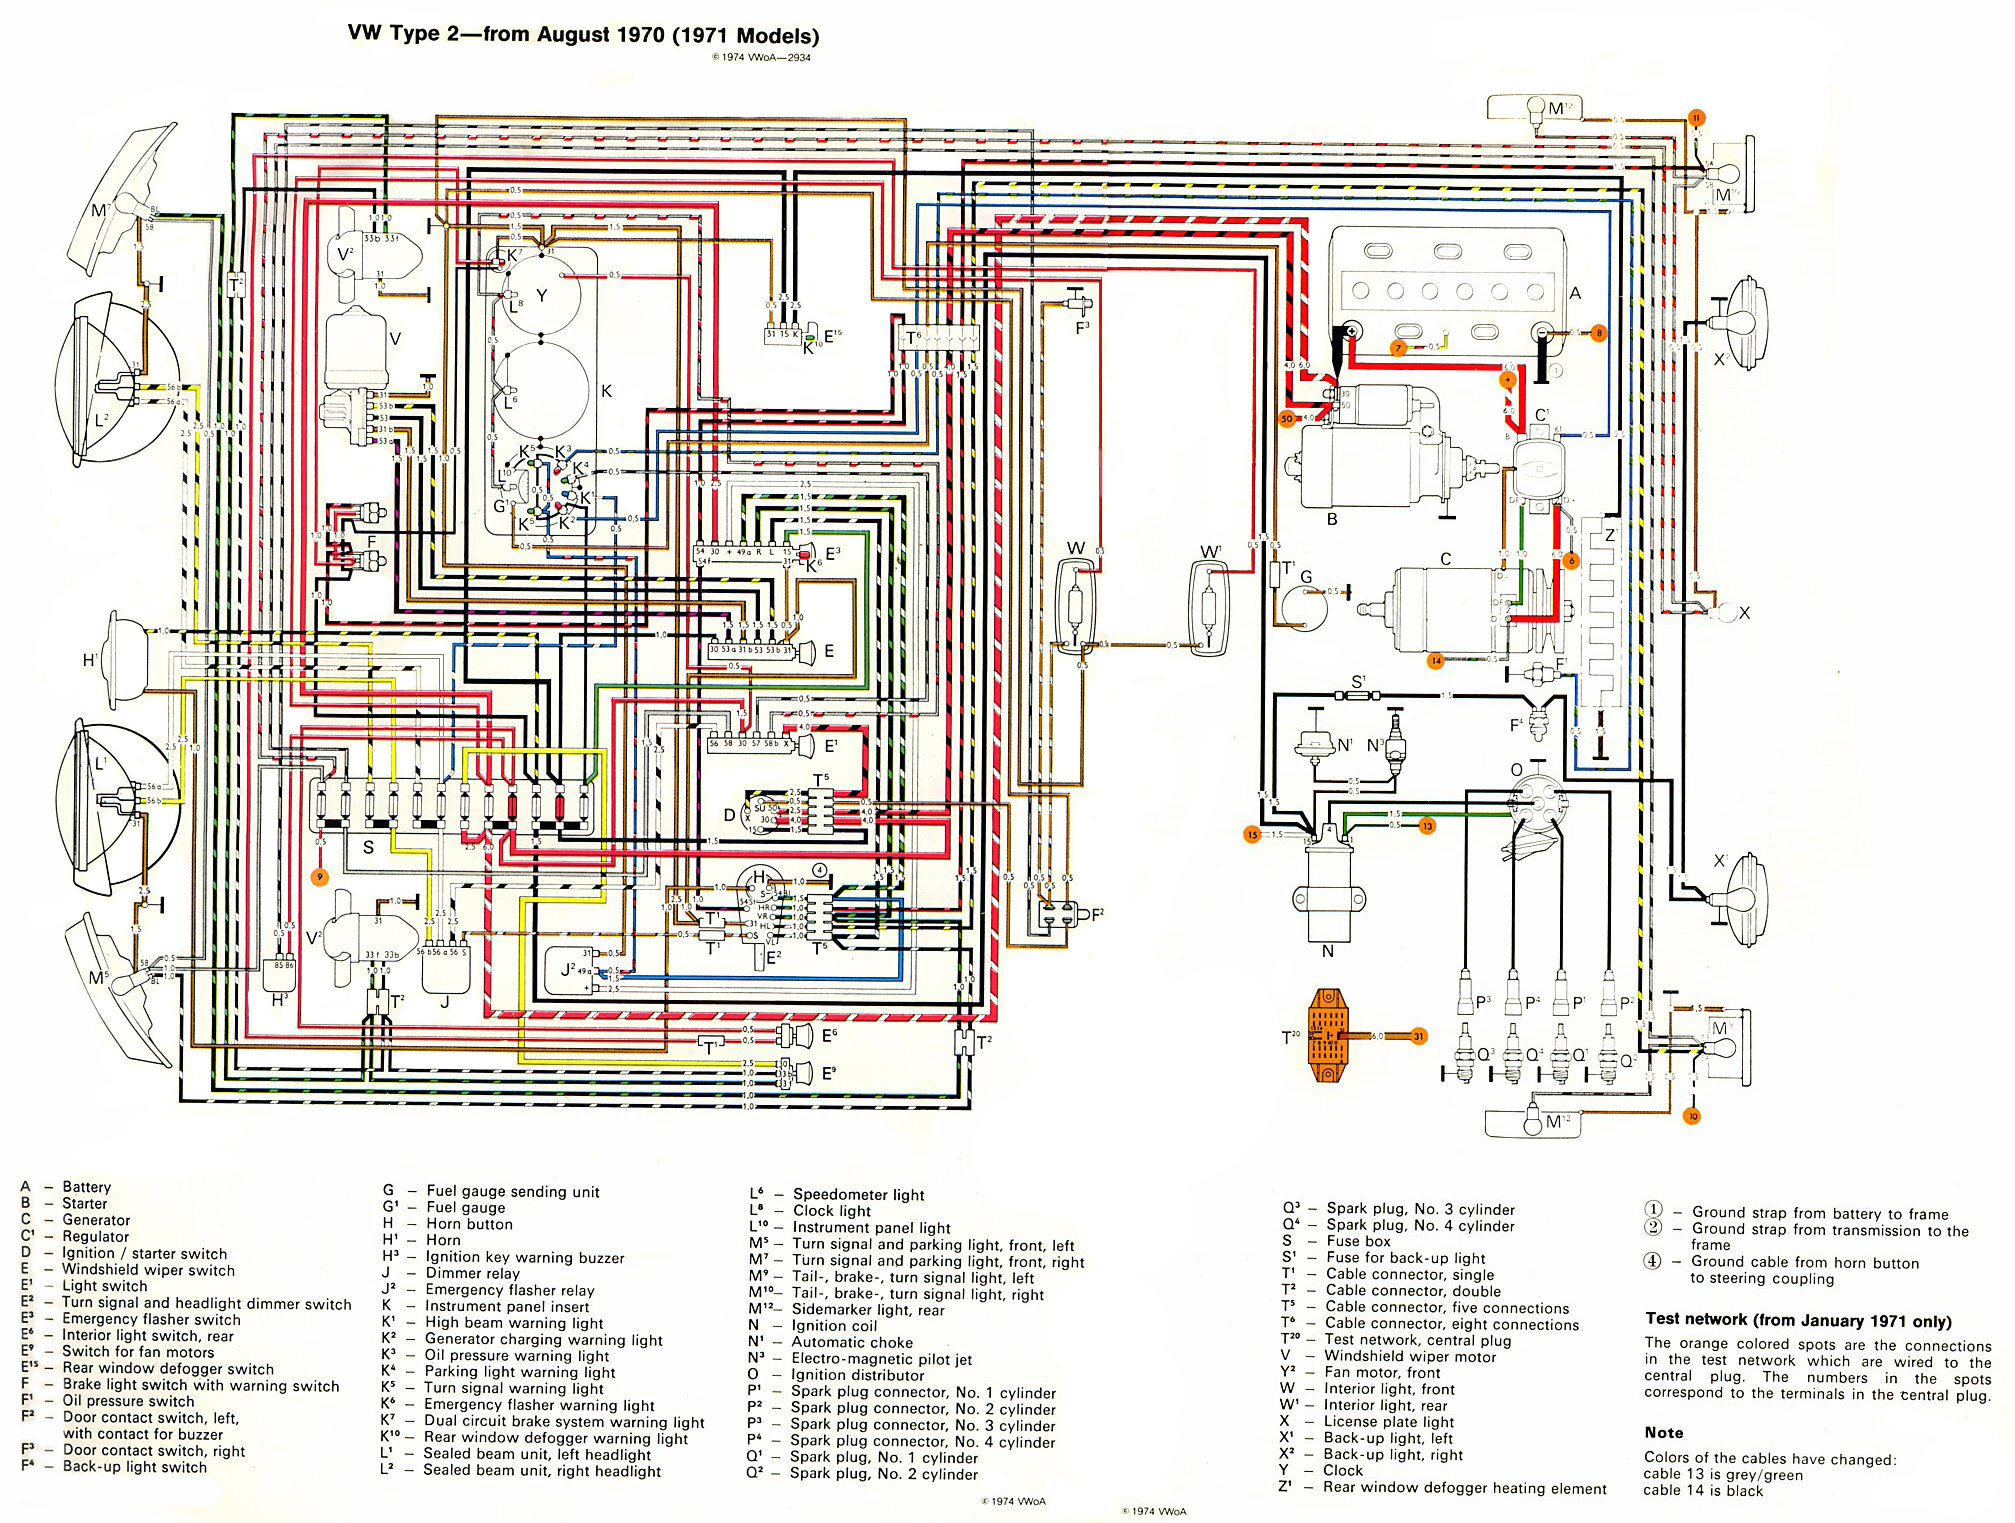 baybus_71_fixed thesamba com type 2 wiring diagrams Electrical Wiring Diagrams at reclaimingppi.co